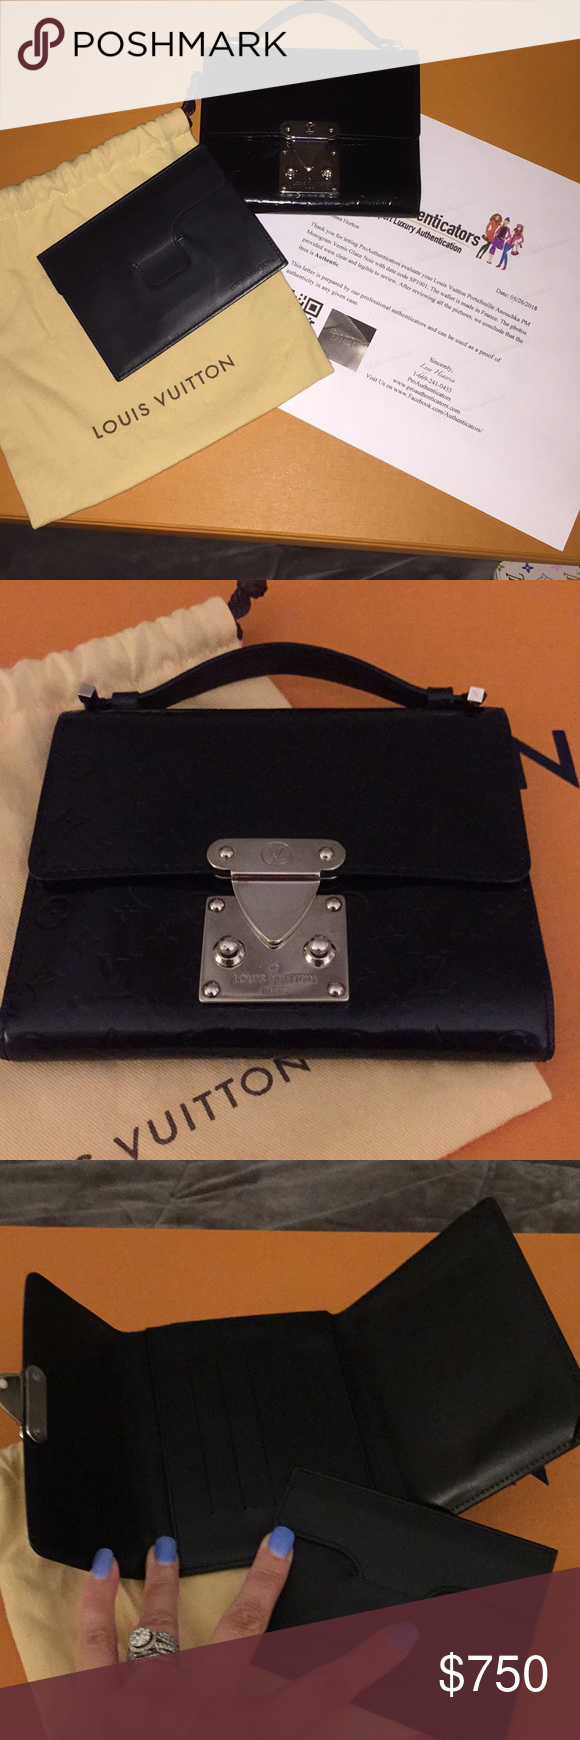 Louis Vuitton Portefeuille Anouchka PM Rare hard to find wallet with  removable leather envelope. PM 88601fc2b4ffe